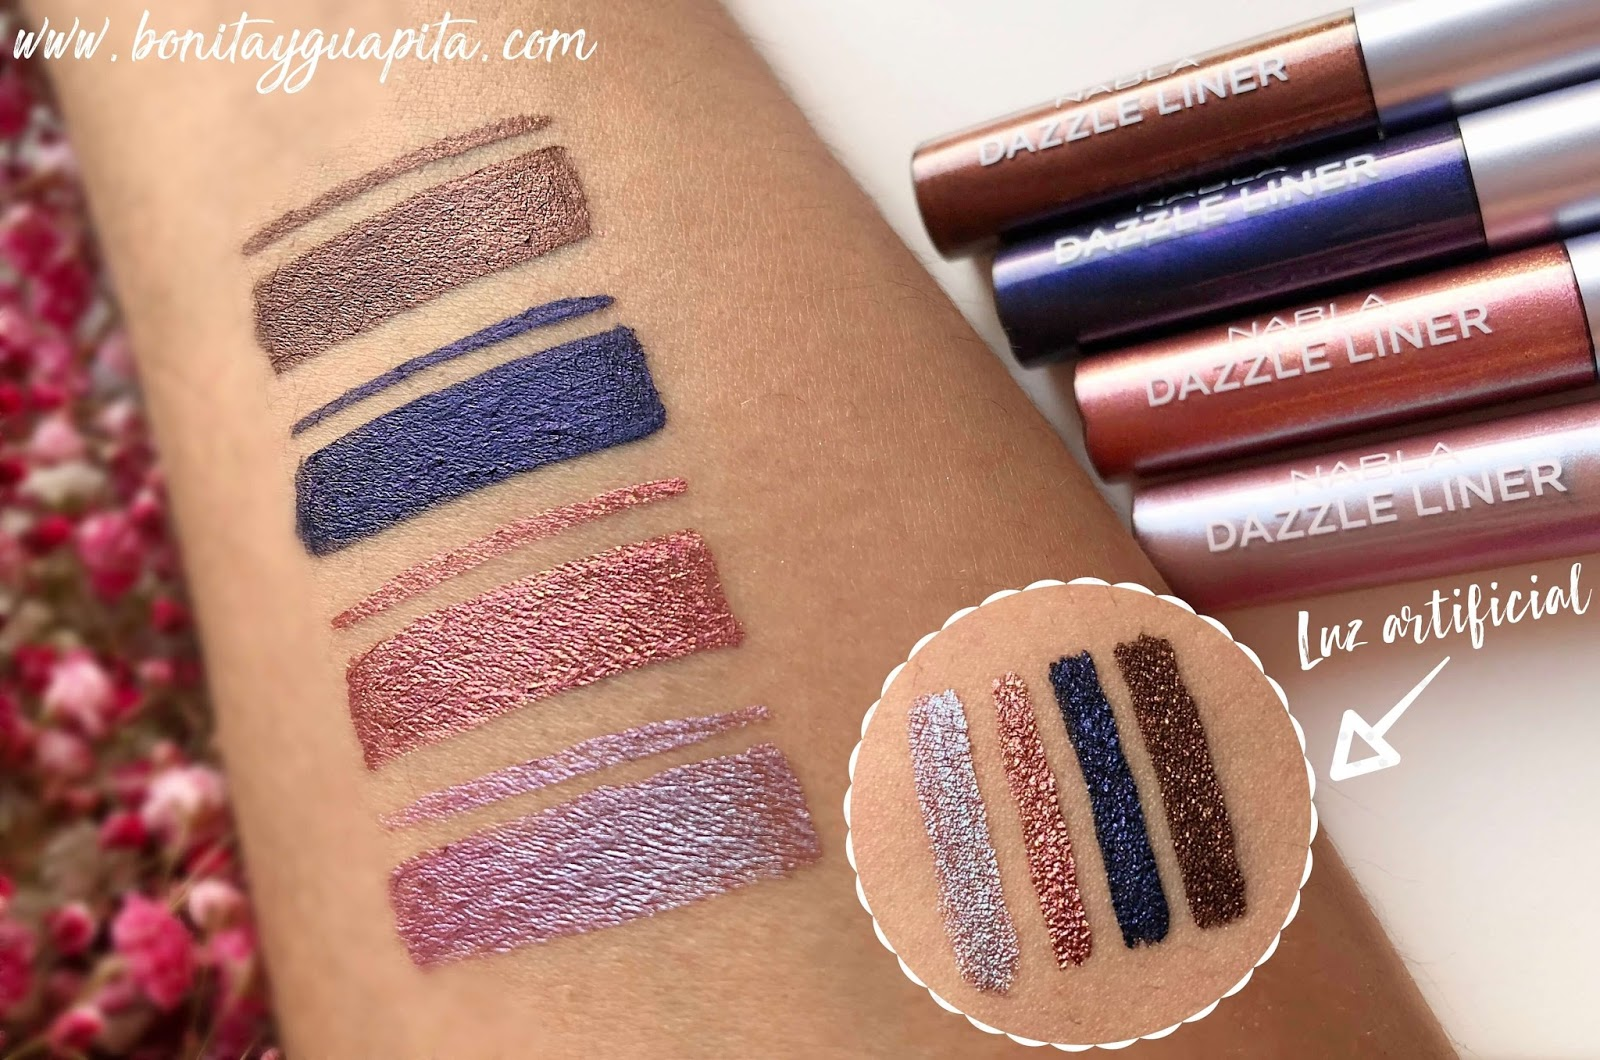 nabla swatches dazzle liner soul blooming